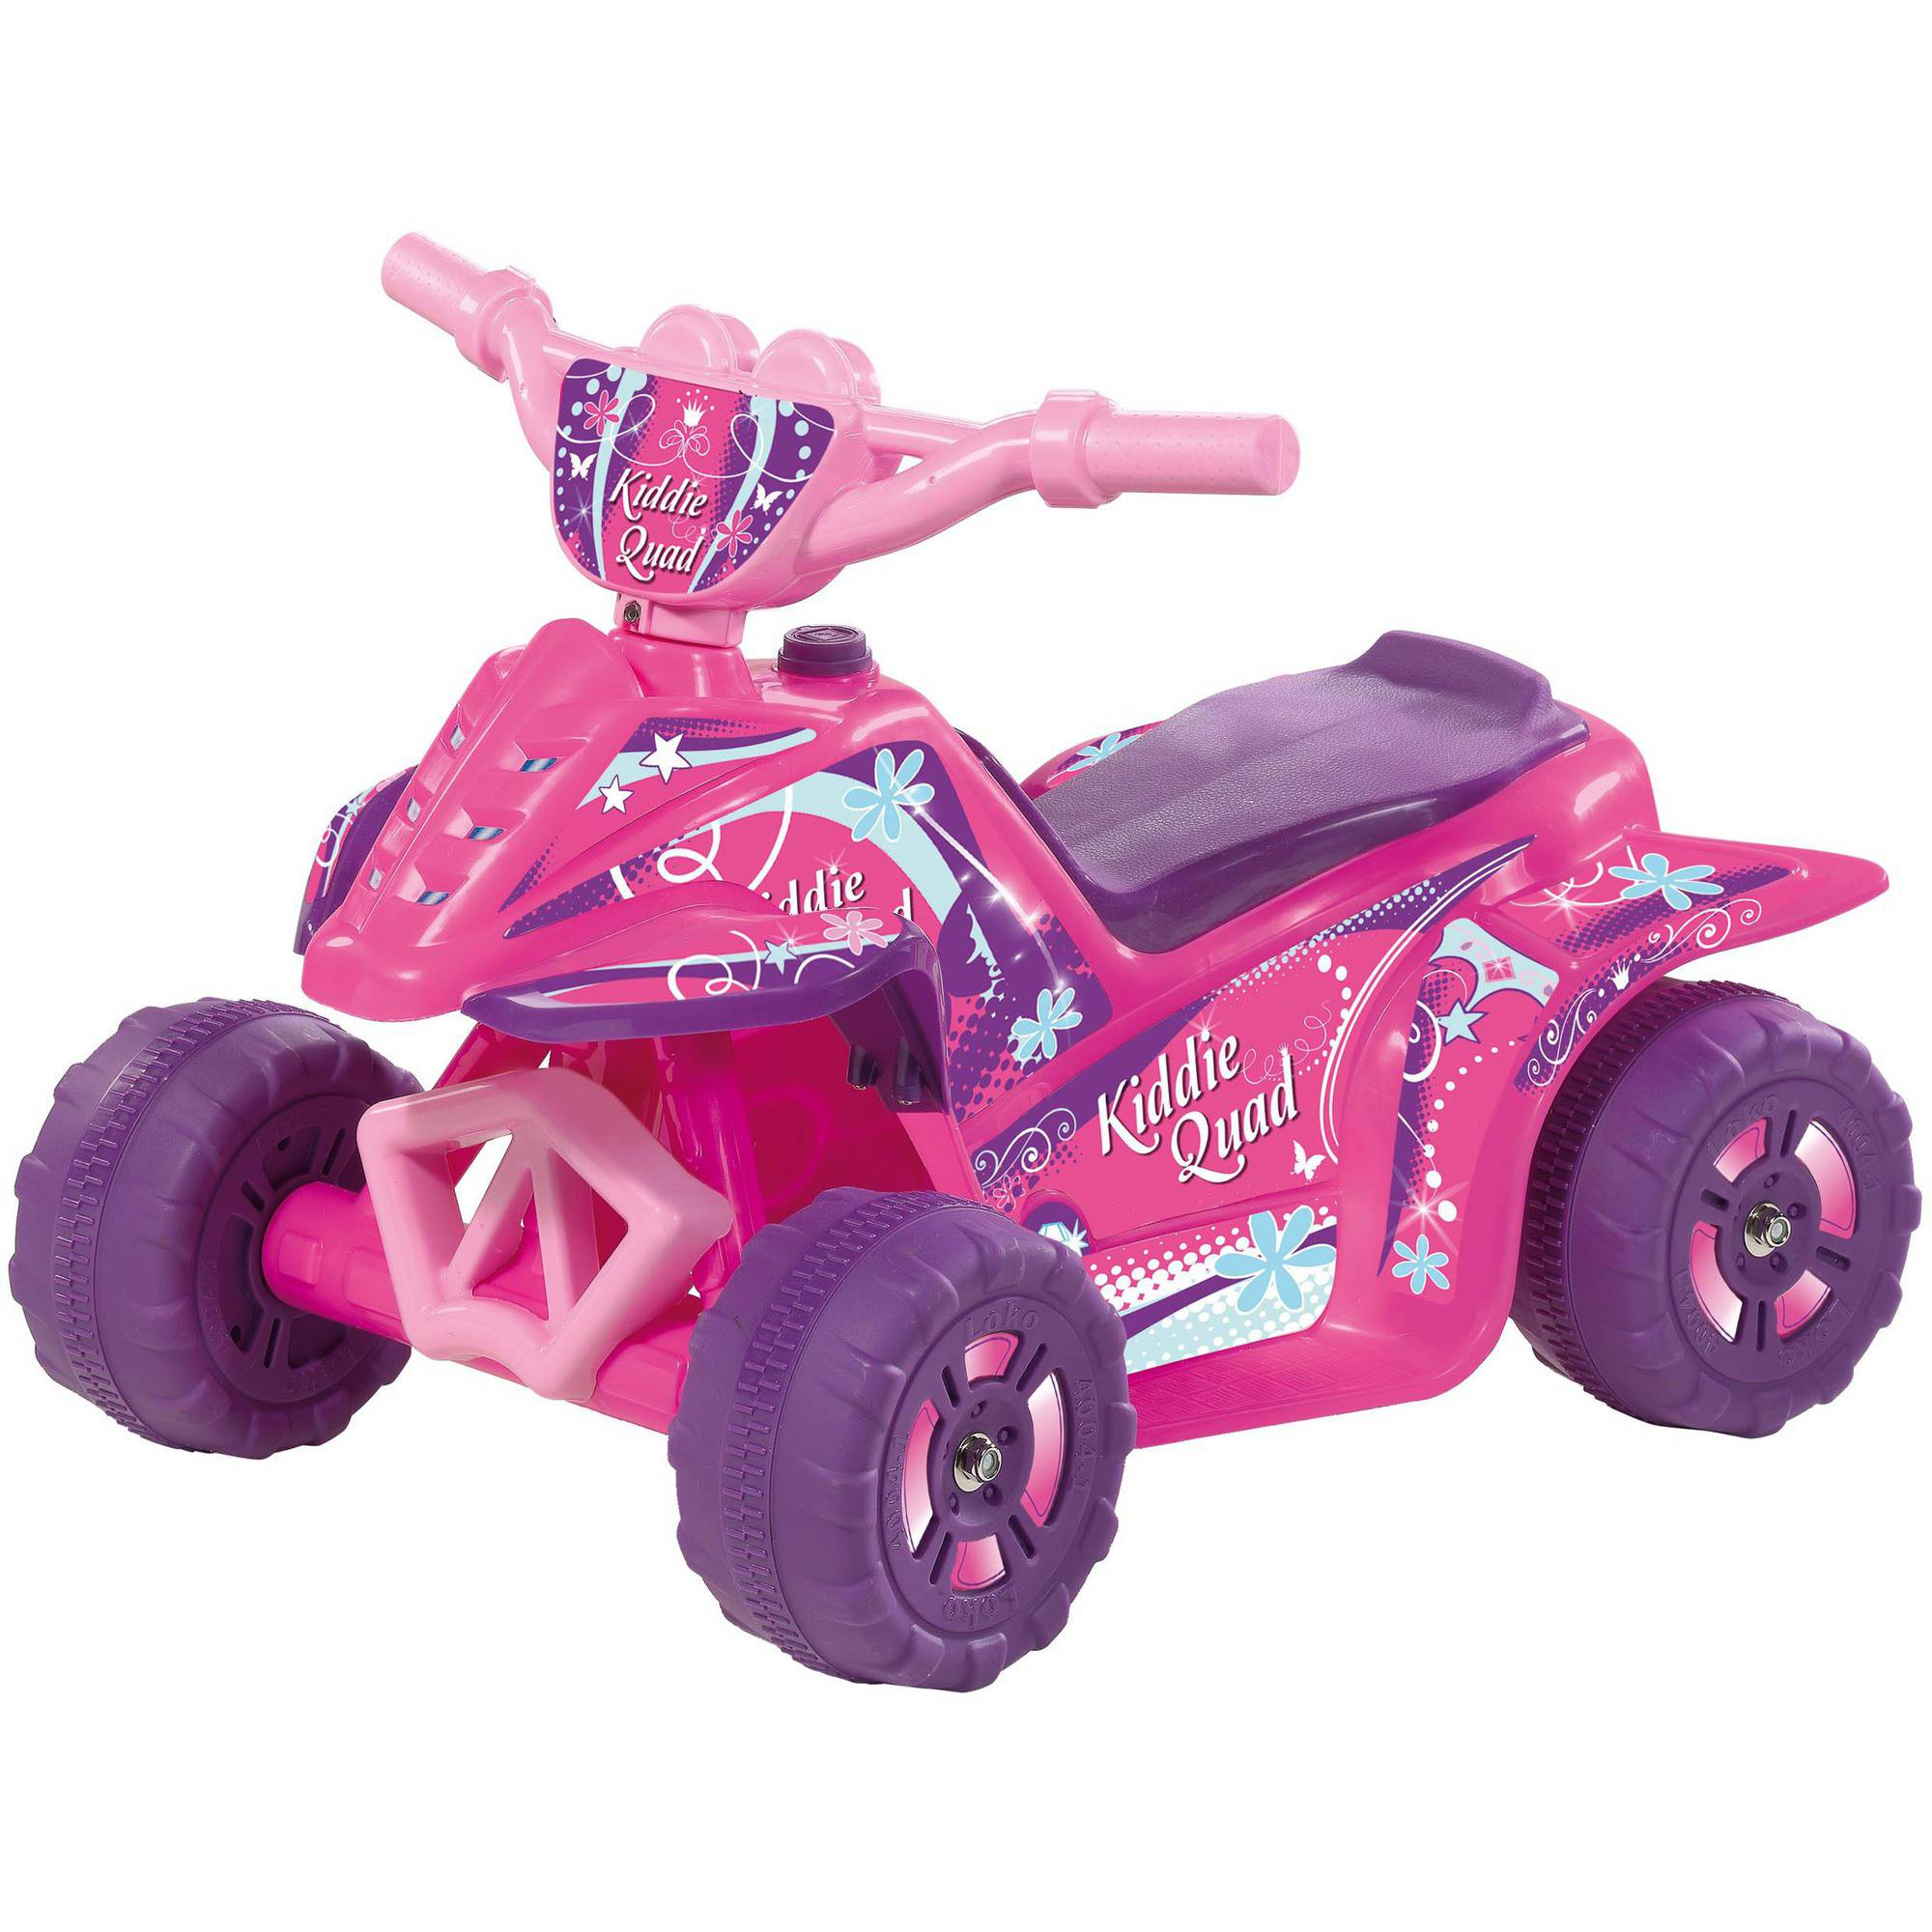 6V Kiddie Quad Battery-Powered Ride-On, Pink